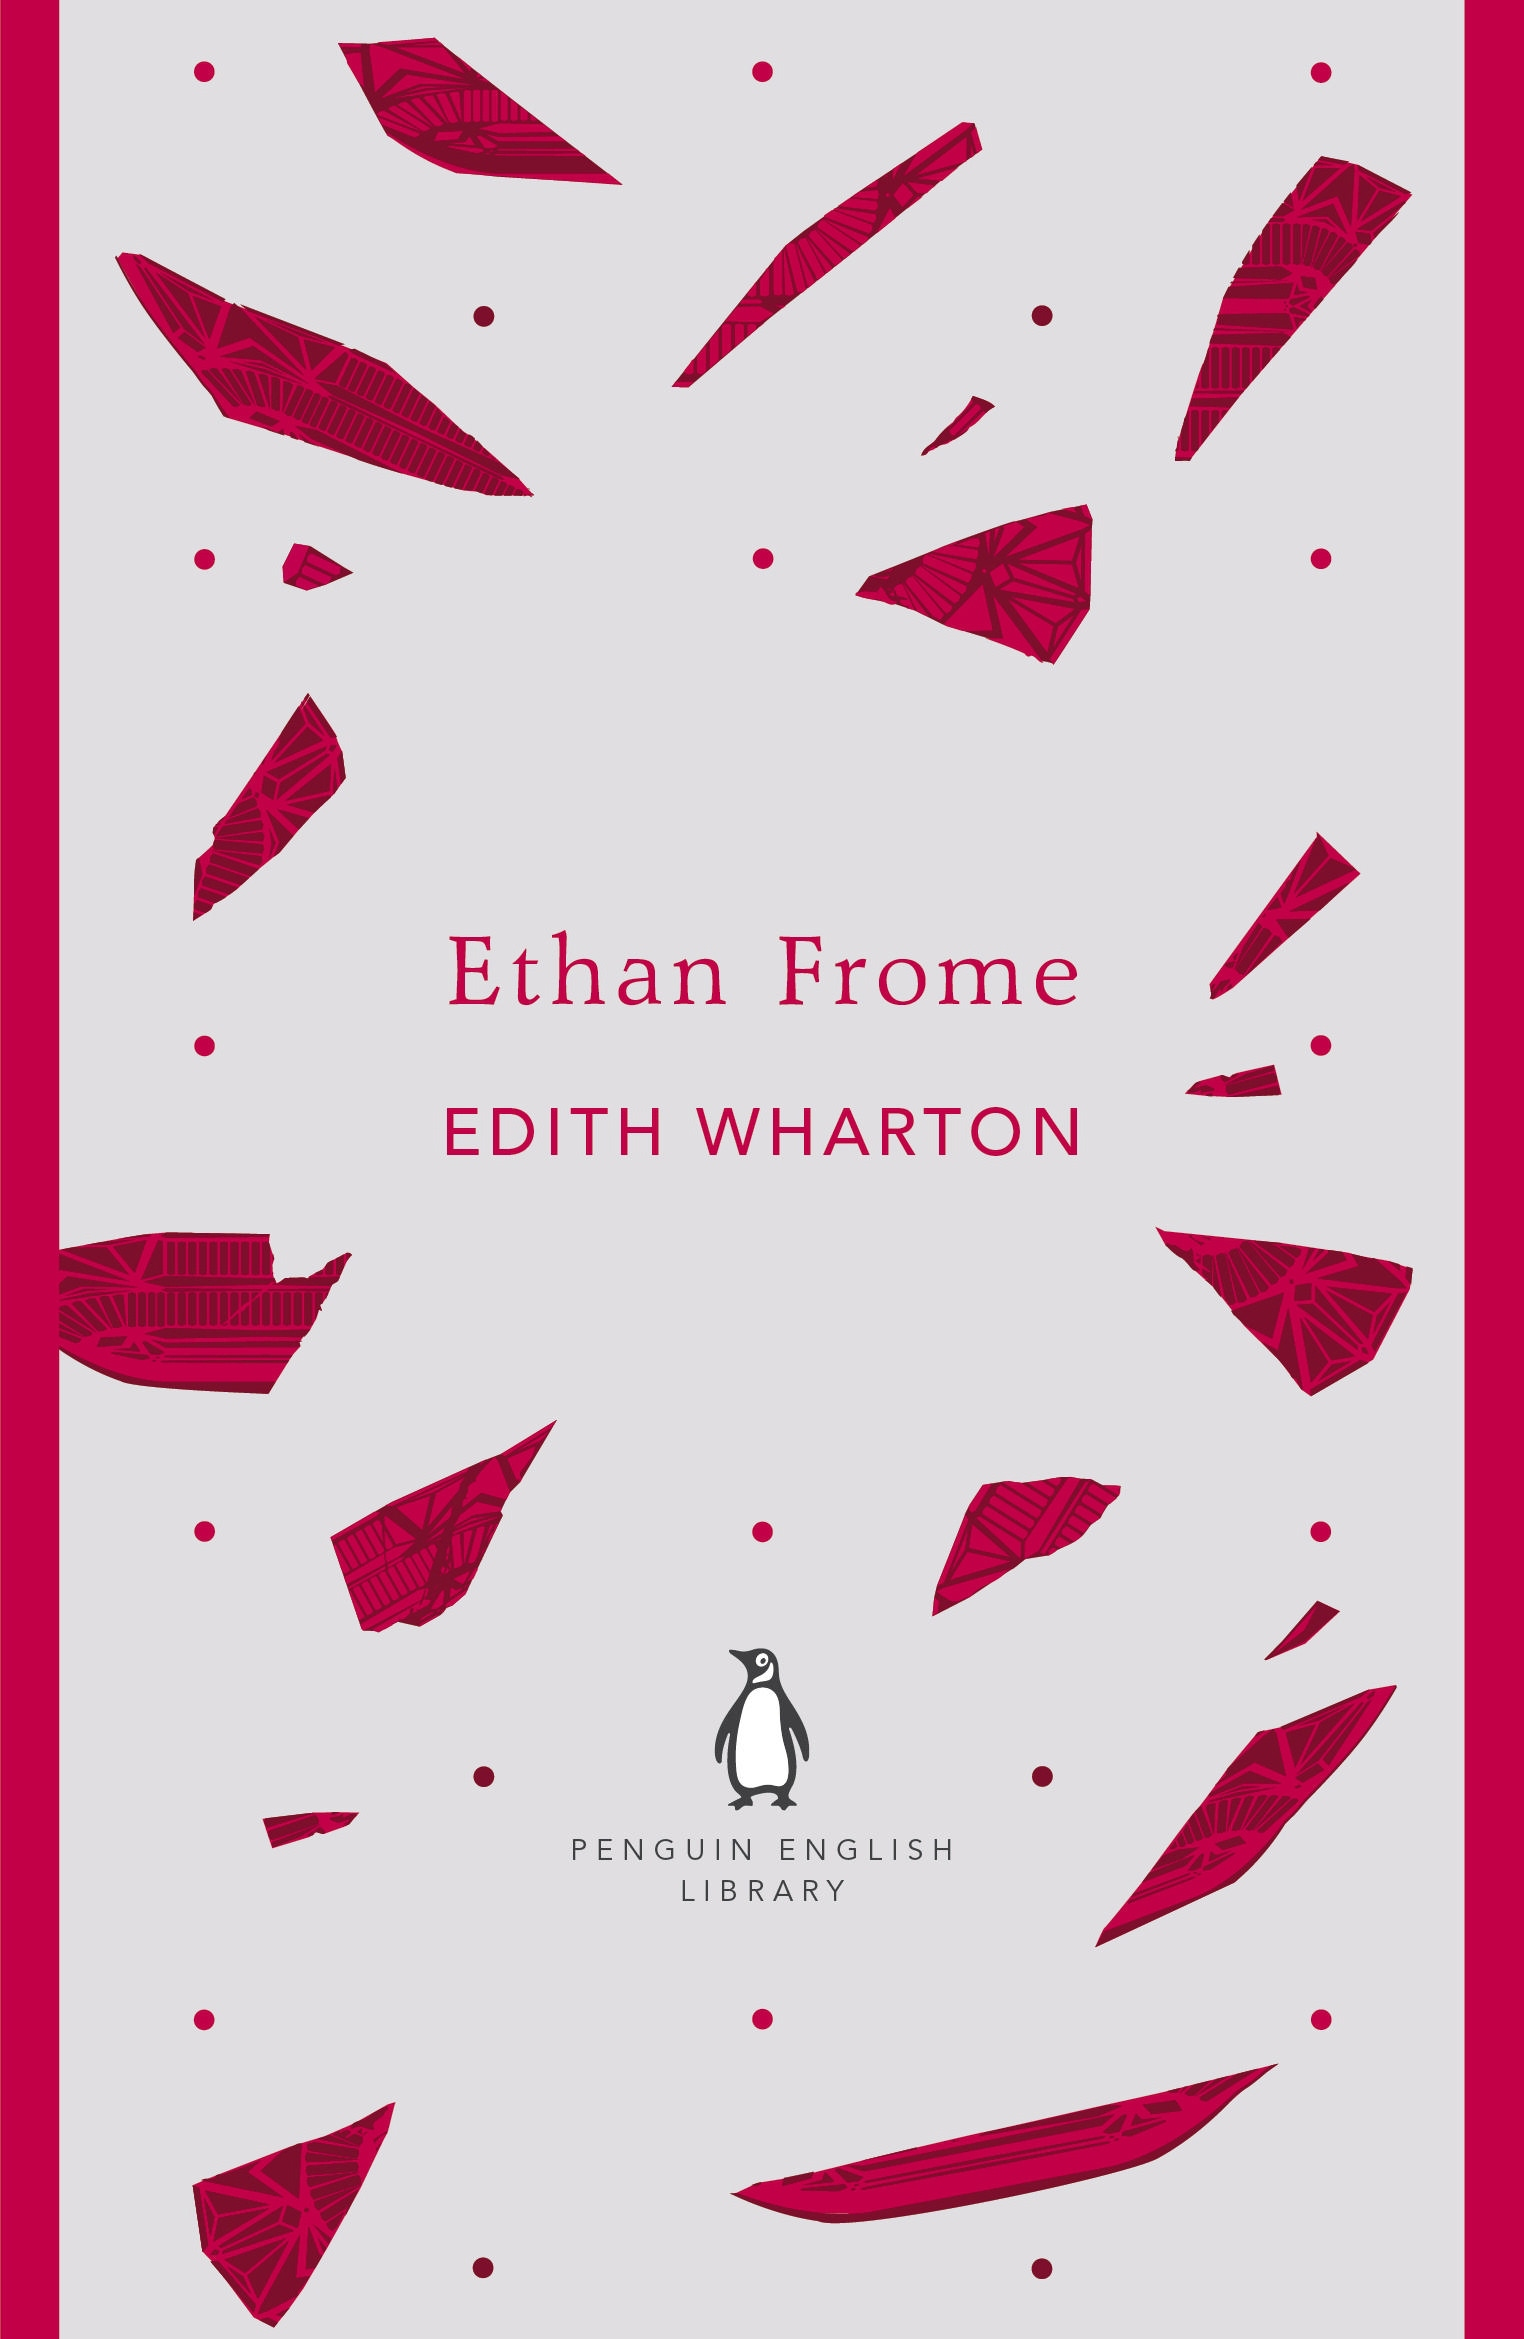 """<i><a href=""""http://www.amazon.com/dp/0486266907/?tag=timecom-20"""" target=""""_blank"""">Ethan Frome</a></i>                                   By Edith Wharton, 77 pages. The title character of Wharton's novella gets caught in a love triangle between his wife and her cousin. The resolution, as any high school English student can tell you, is tragic."""